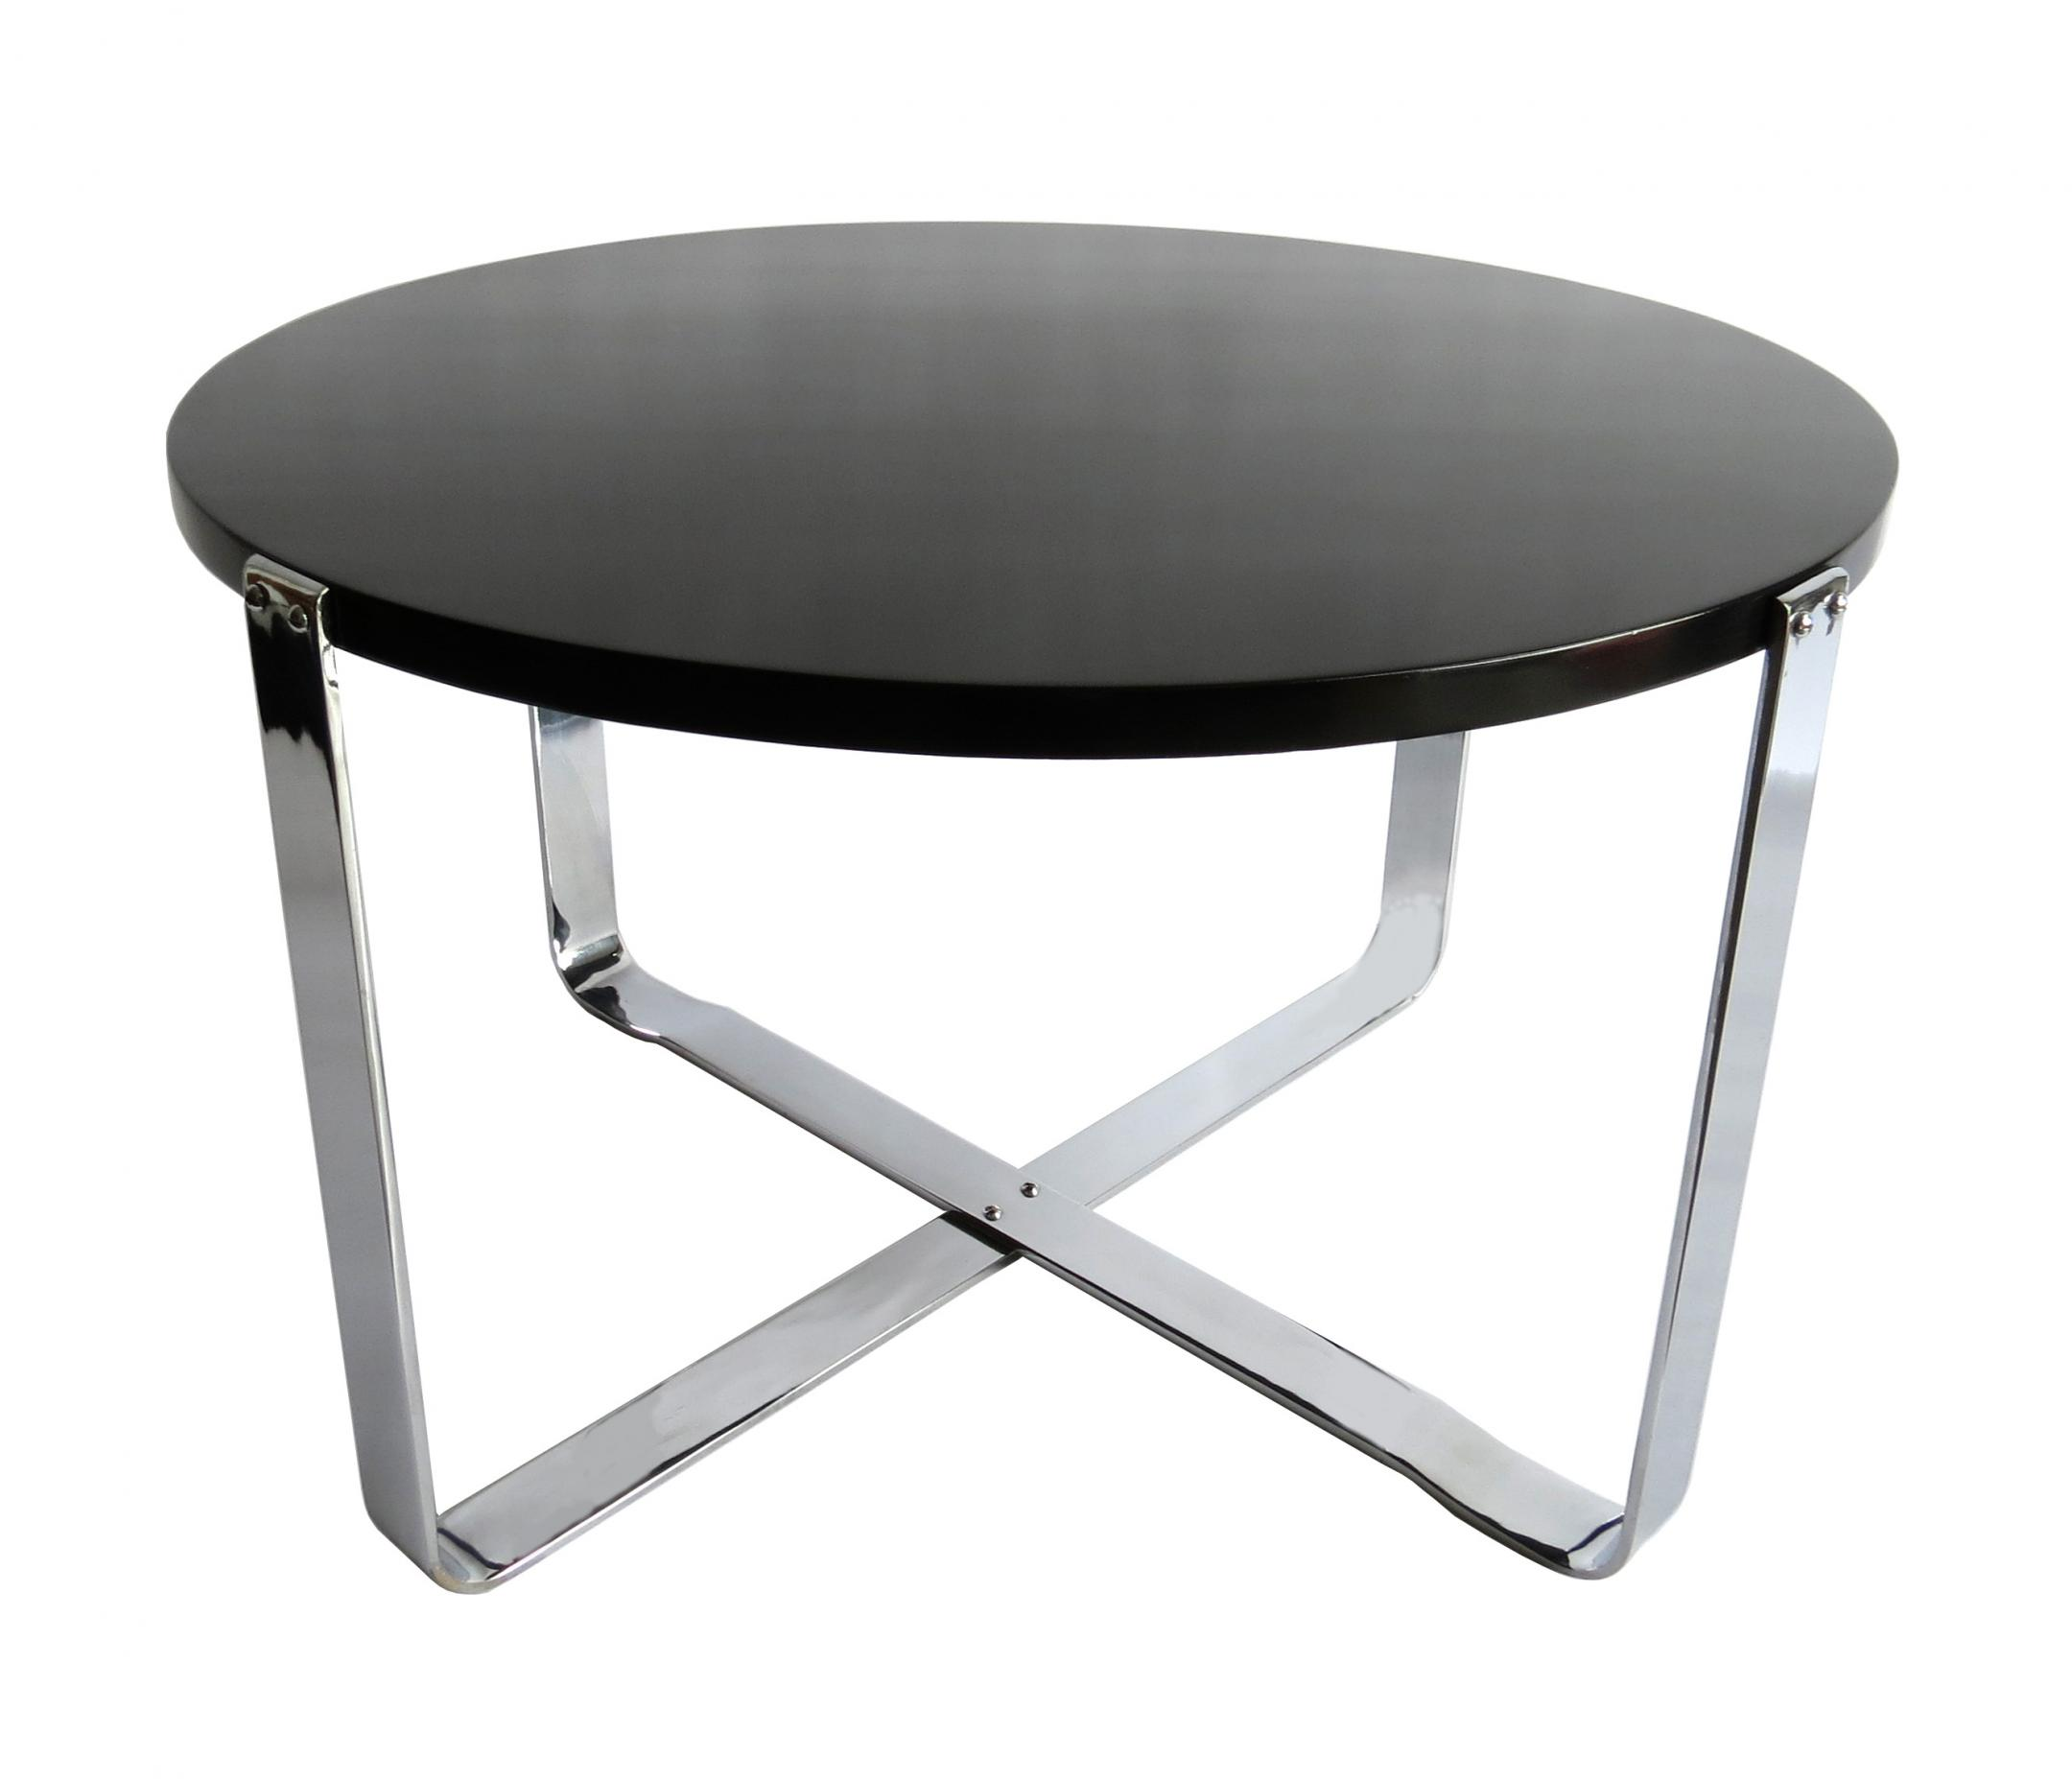 American Art Deco Coffee Table Modernism